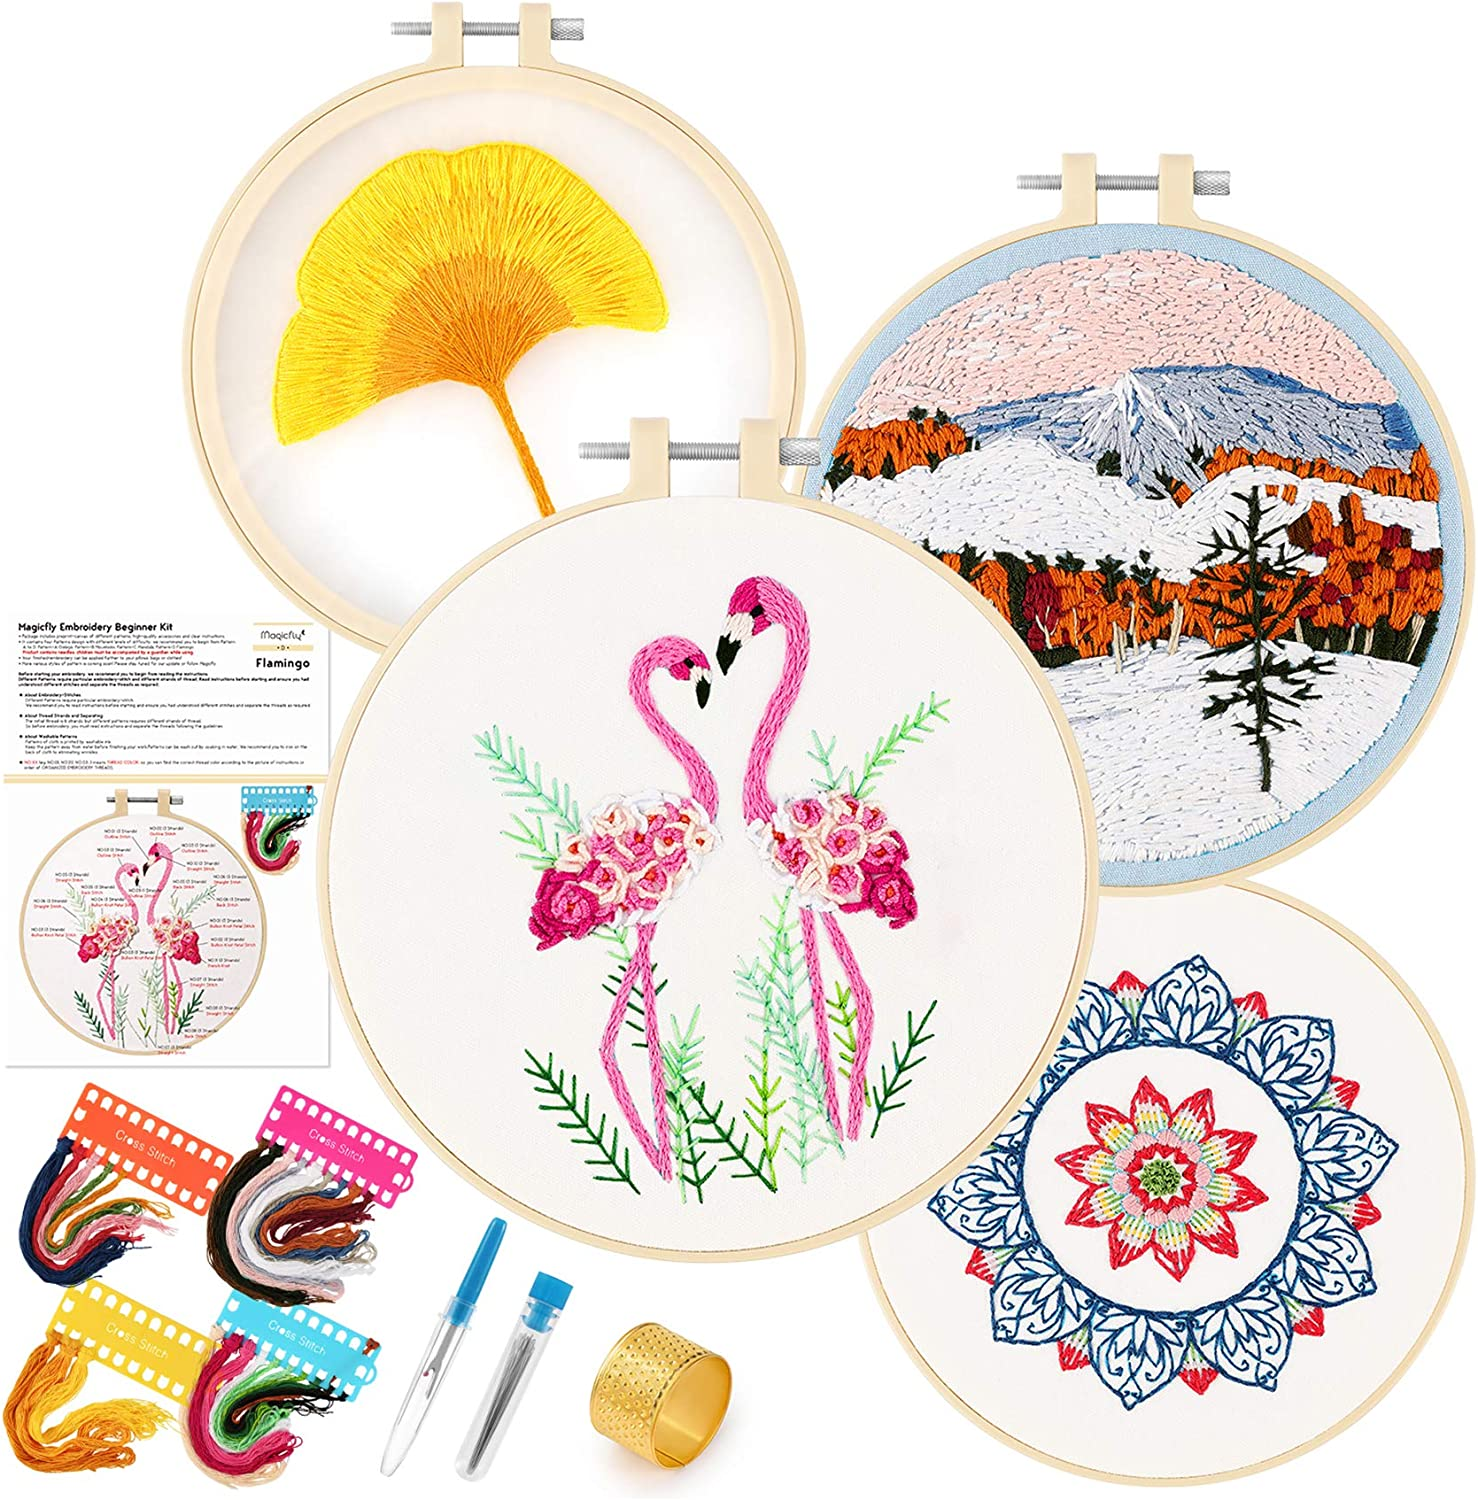 4 Sets Embroidery Starter Kit with Pattern 4 Embroidery Clothes Cross Stitch Kit for Beginners Include Instructions 1 Plastic Embroidery Hoops Color Threads and Tools Kit